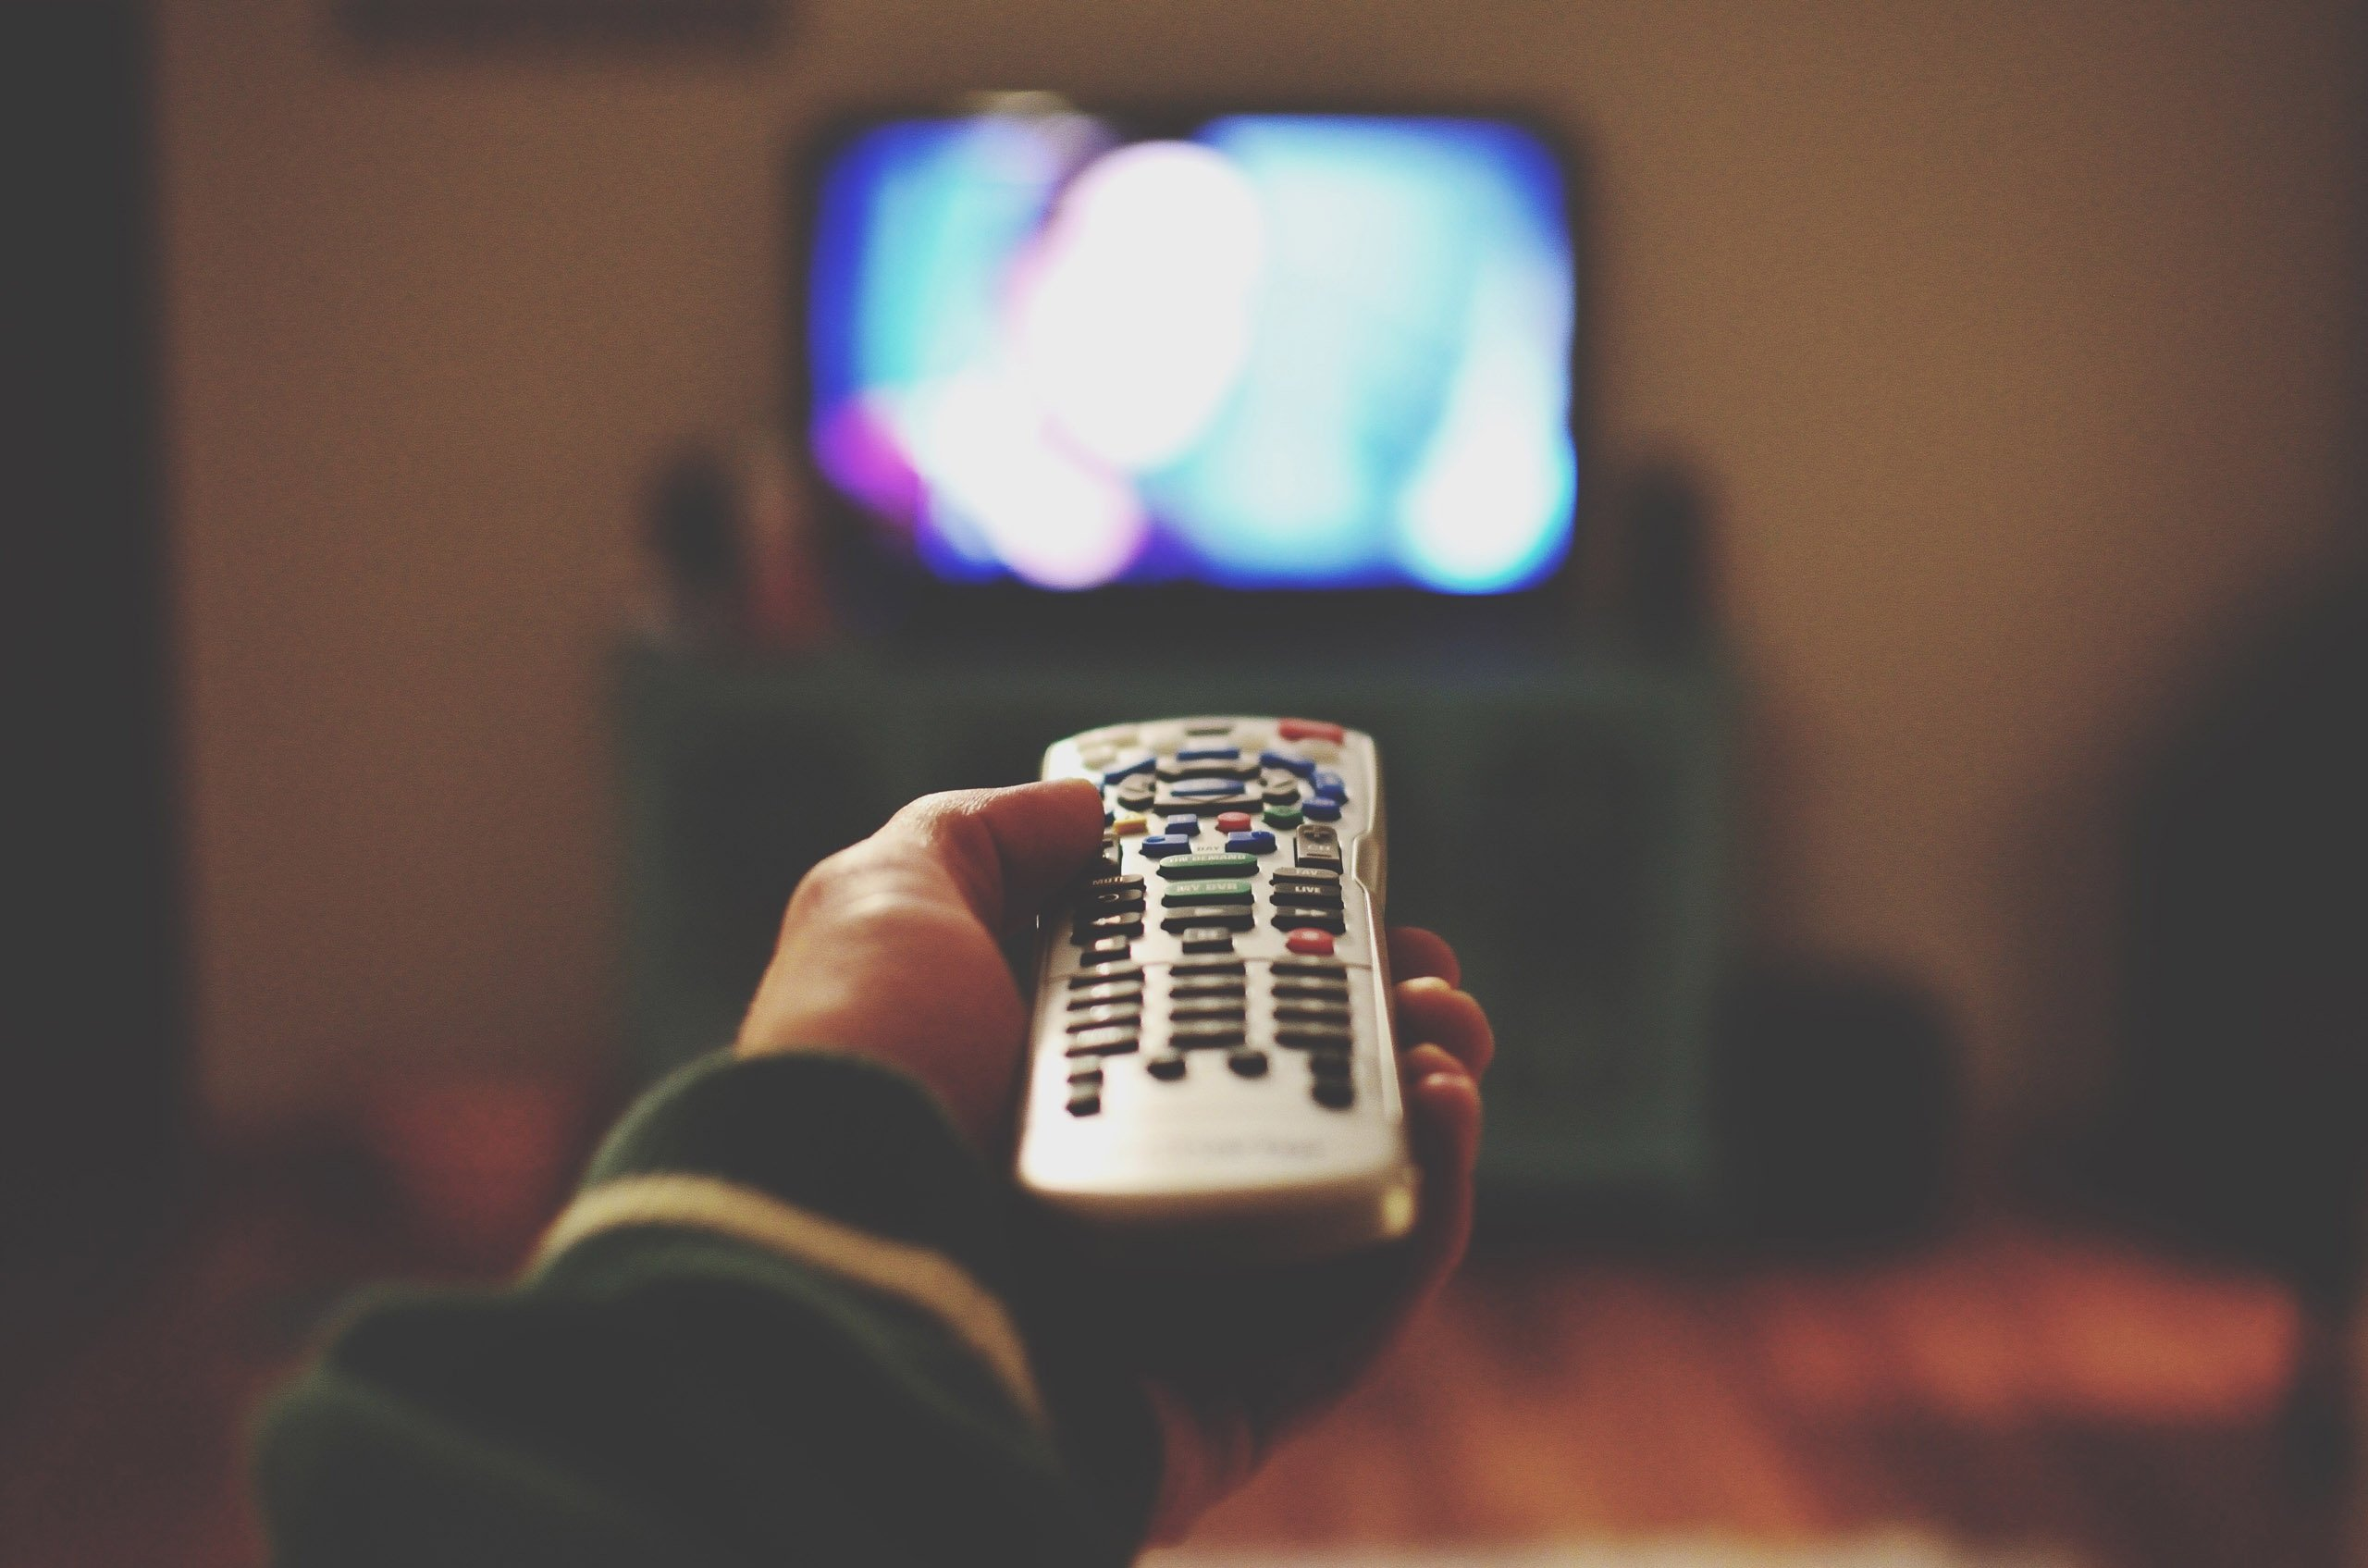 Cropped Of Person Holding Remote Control Against Television Set At Home